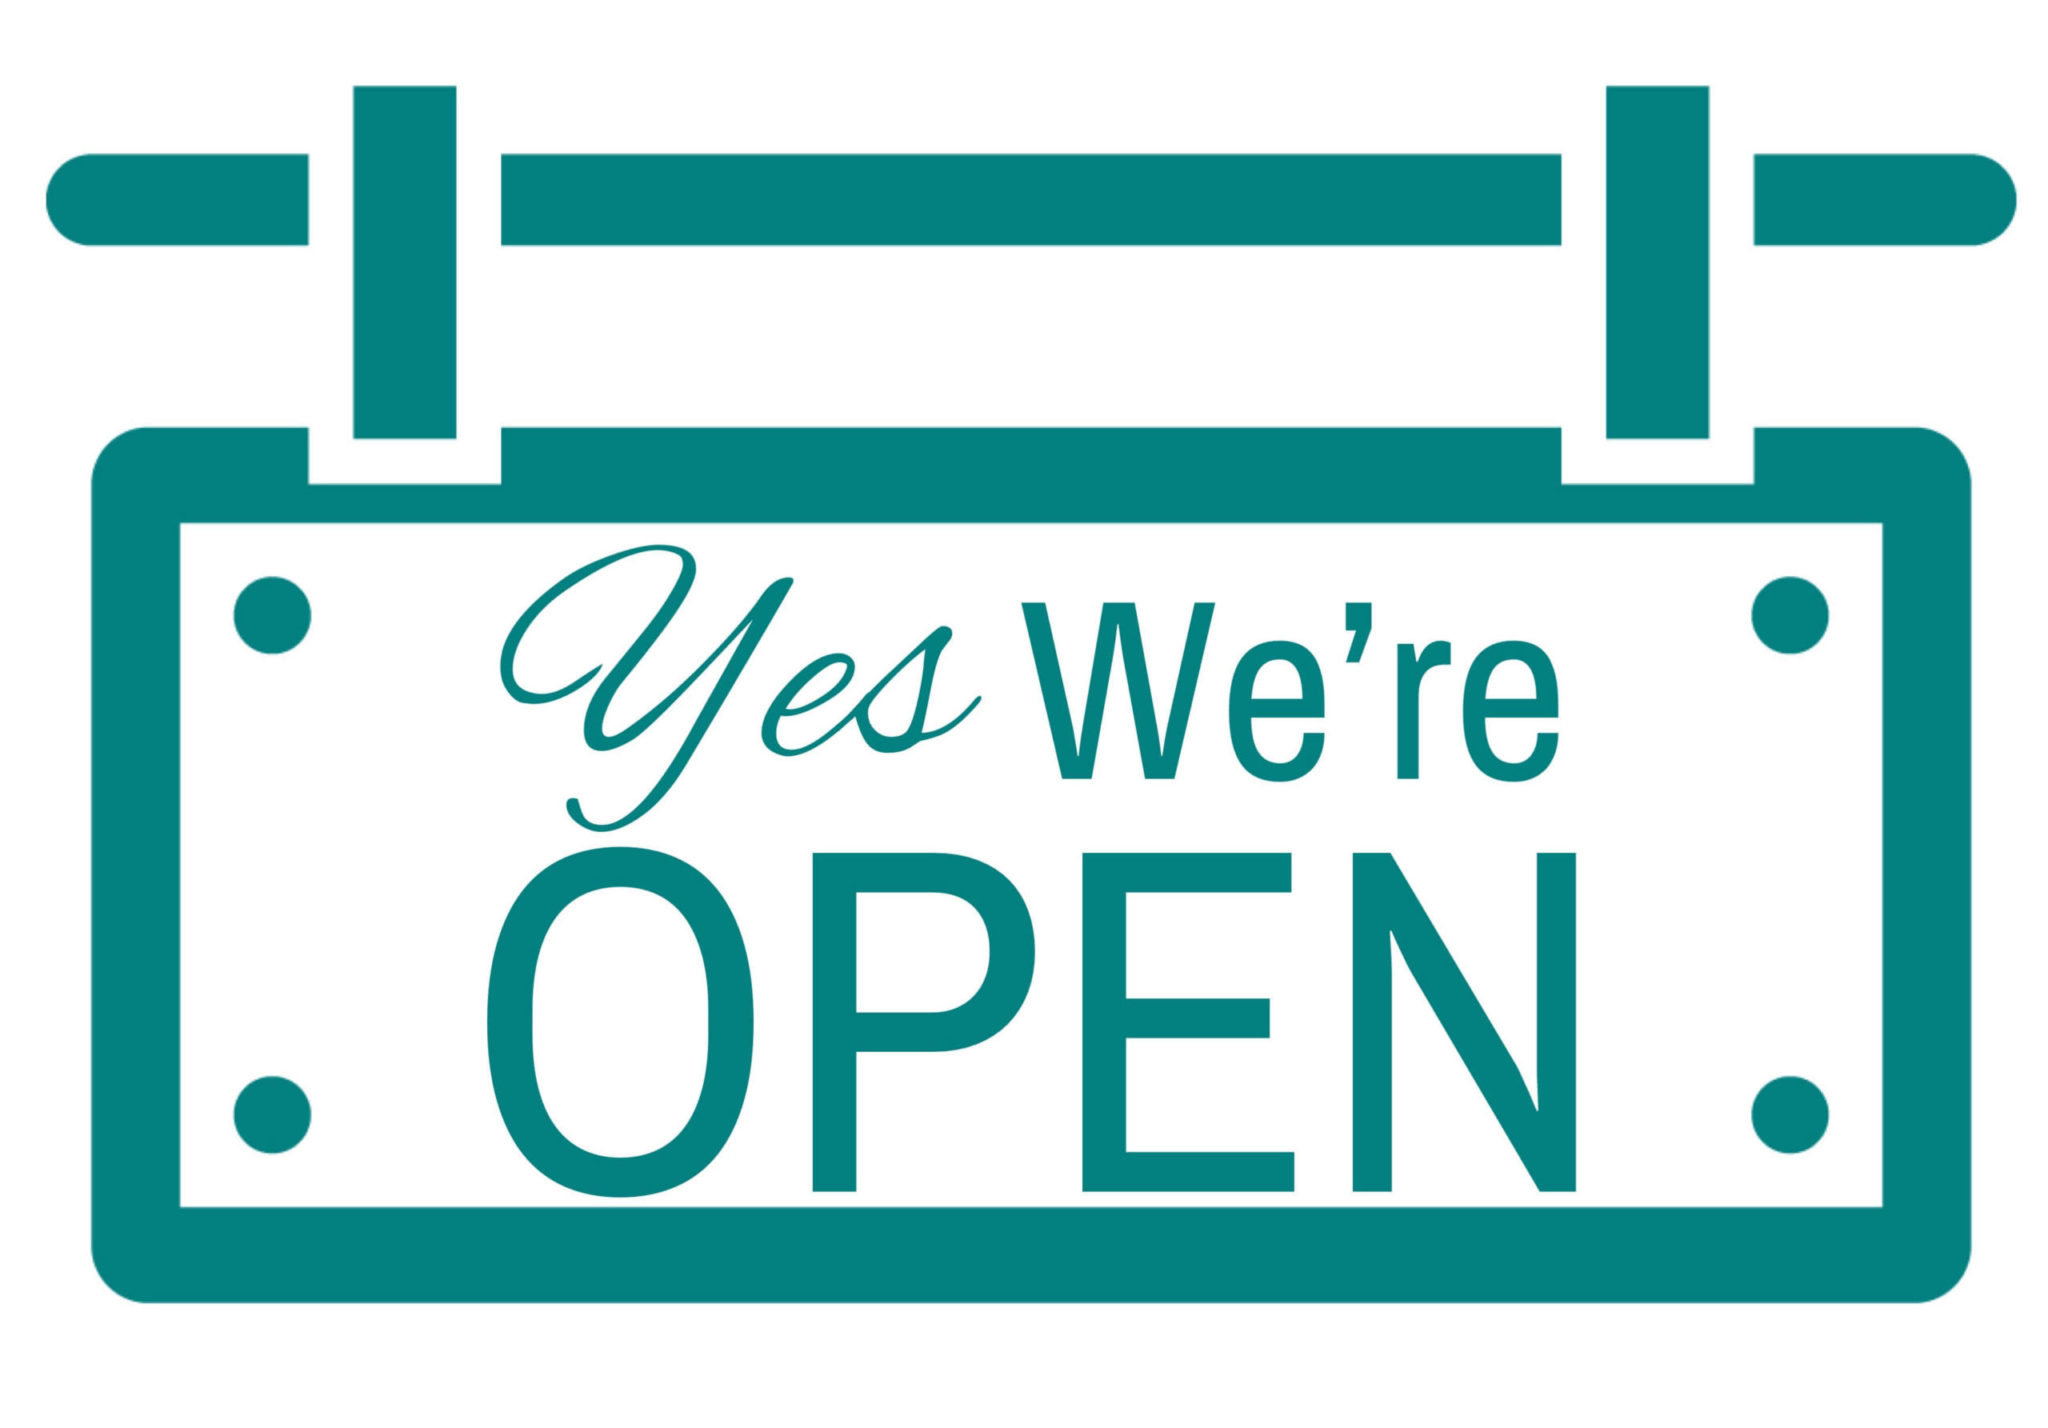 We are Open icon for Roof Crafters